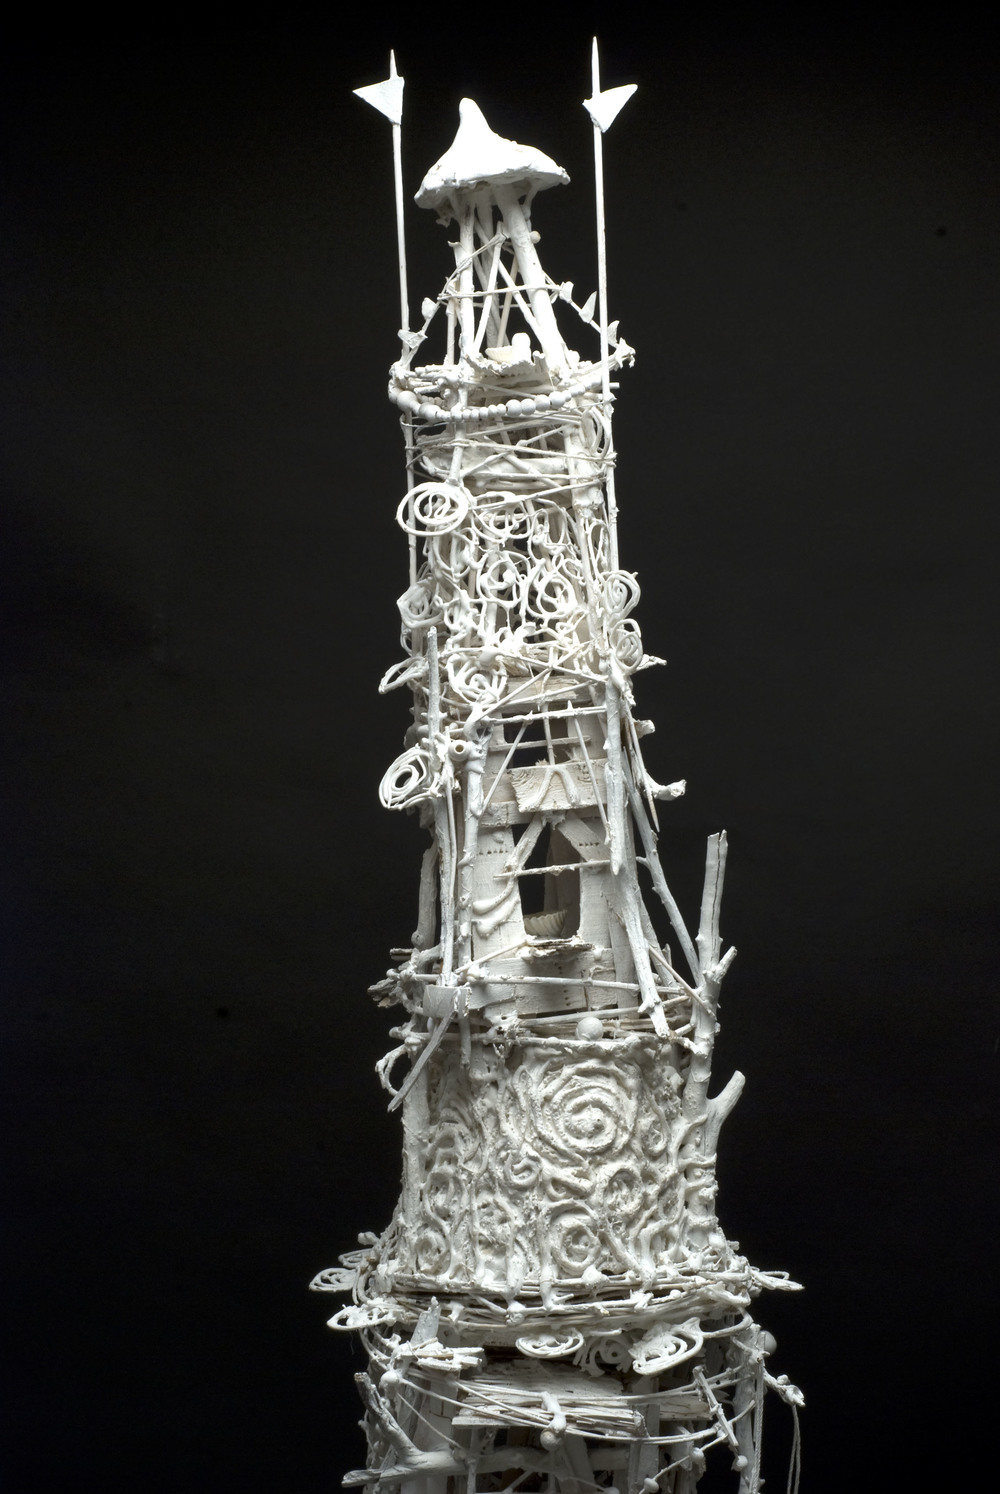 Sylvain Corentin    White Tower (small)  , 2012 Wood, canvas, wire, yarn, glue, paint 63.5 x 10.5 x 11.5 inches  /  161.3 x 26.7 x 29.2 cm  /  SCo 9